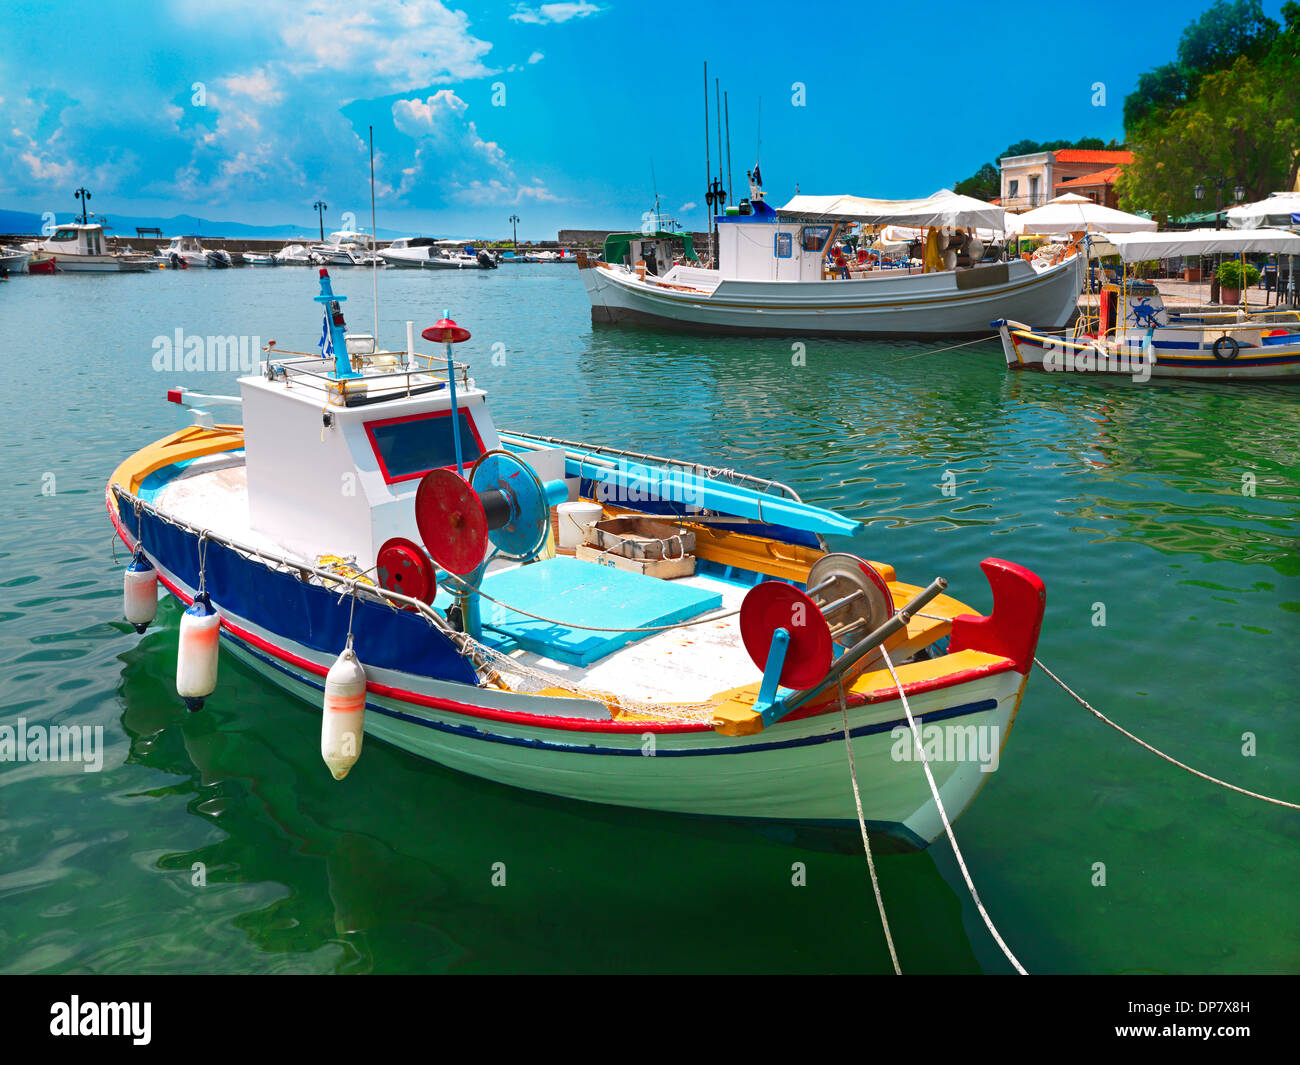 the port of Molivos, village in Lesvos island in Greece - Stock Image